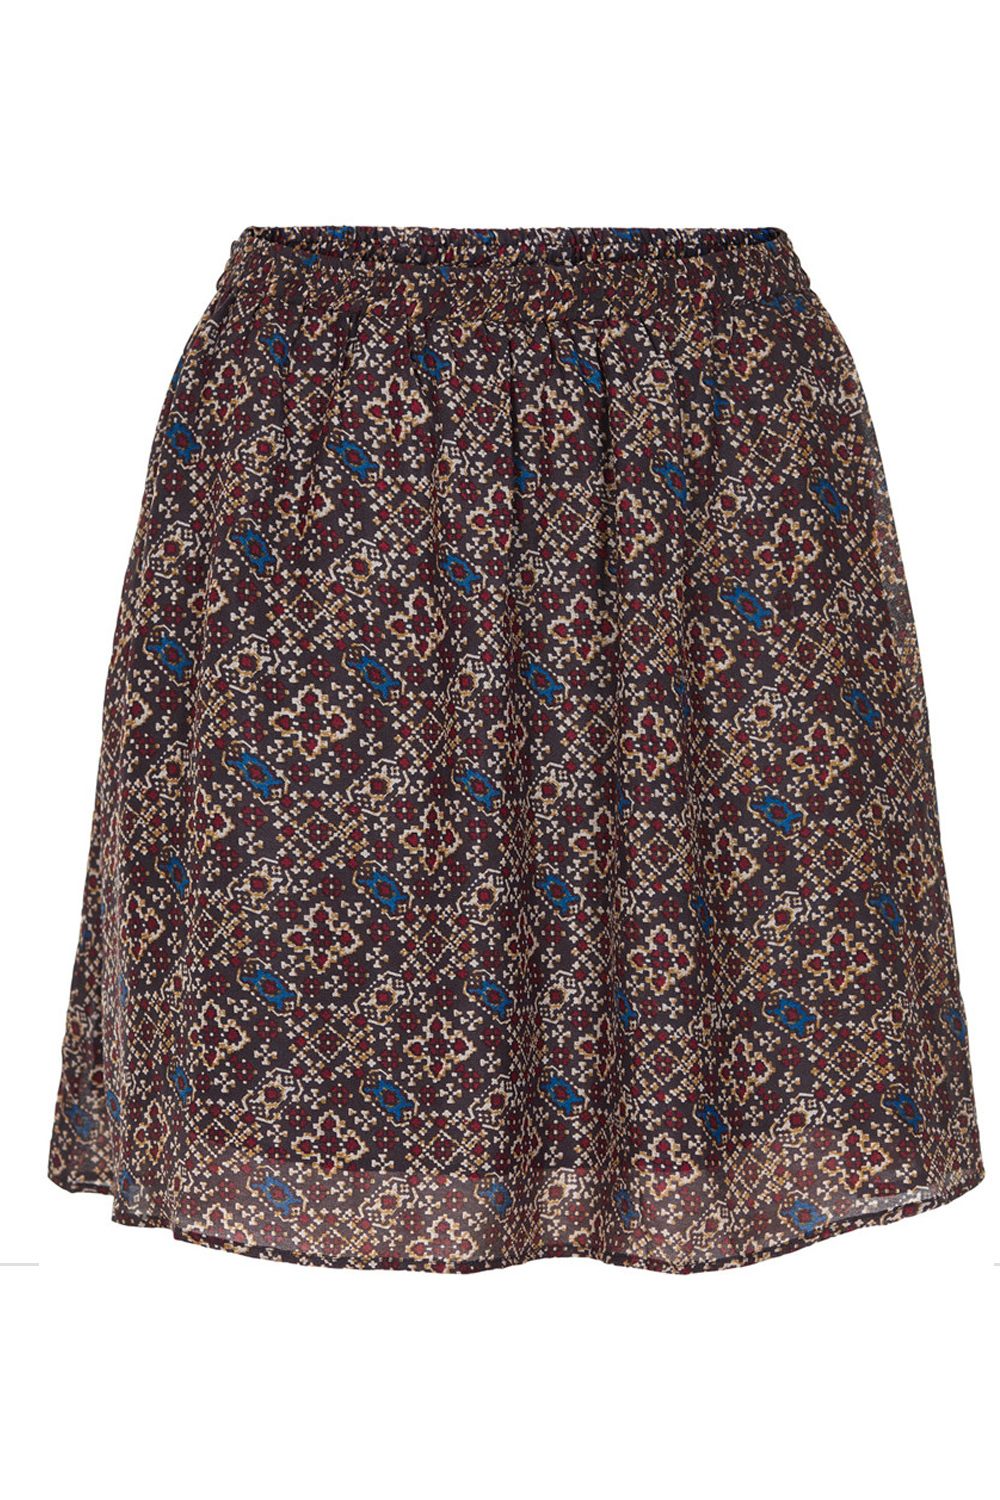 Stella Nova Marrakech Skirt